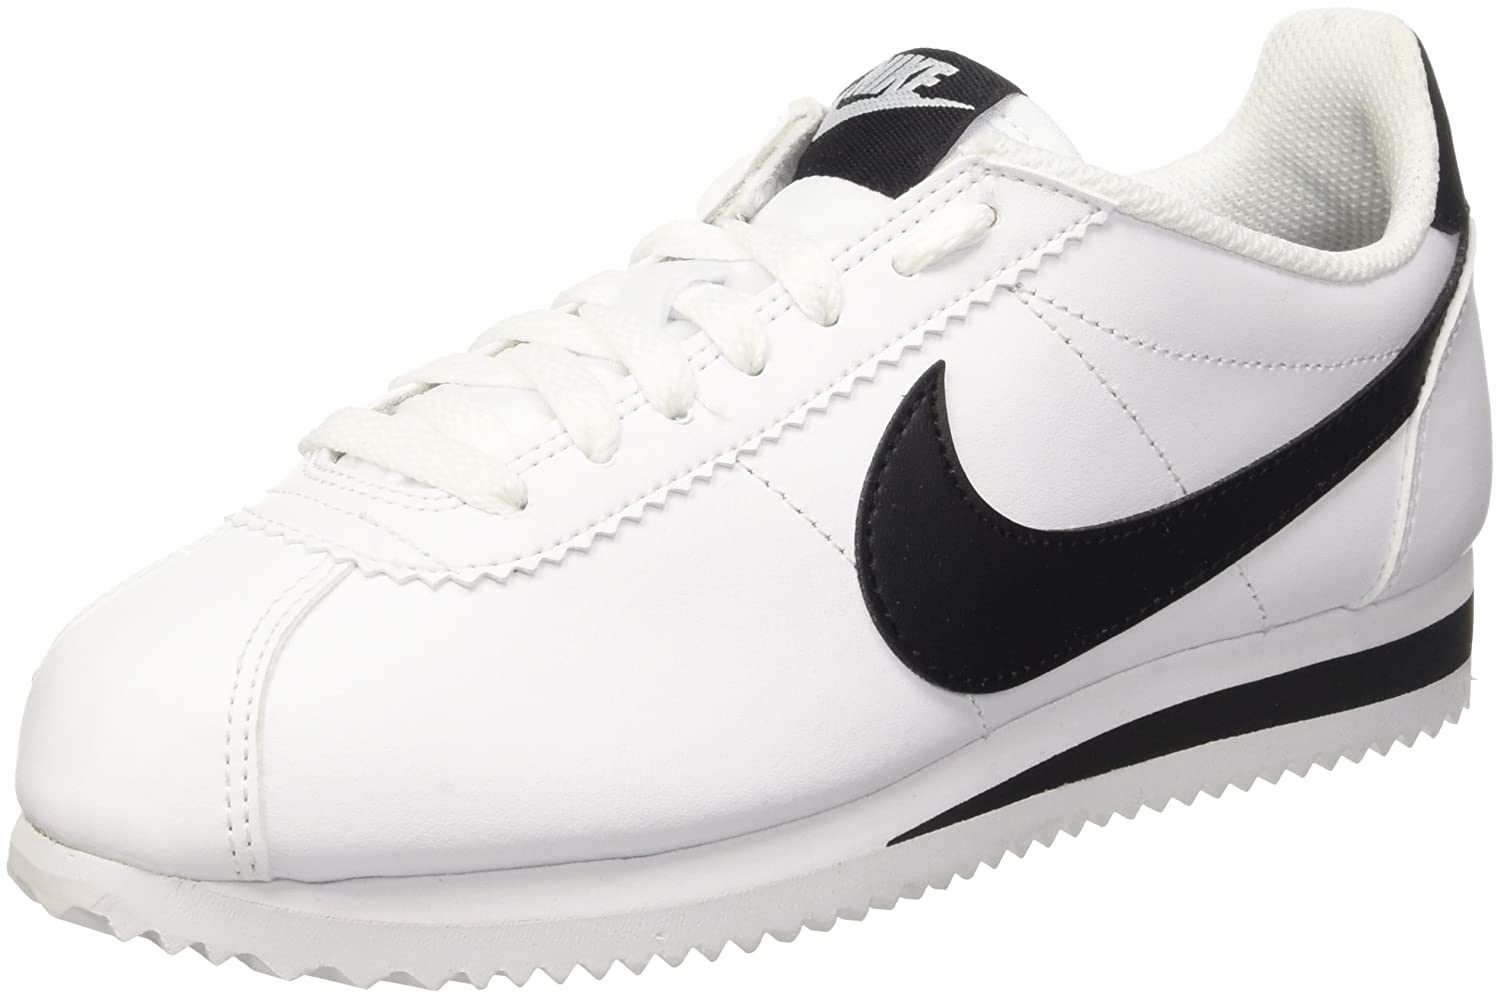 NIKE Women's Classic Cortez Leather Casual Shoe B01DYXQECW 10.5 B(M) US|White / Black